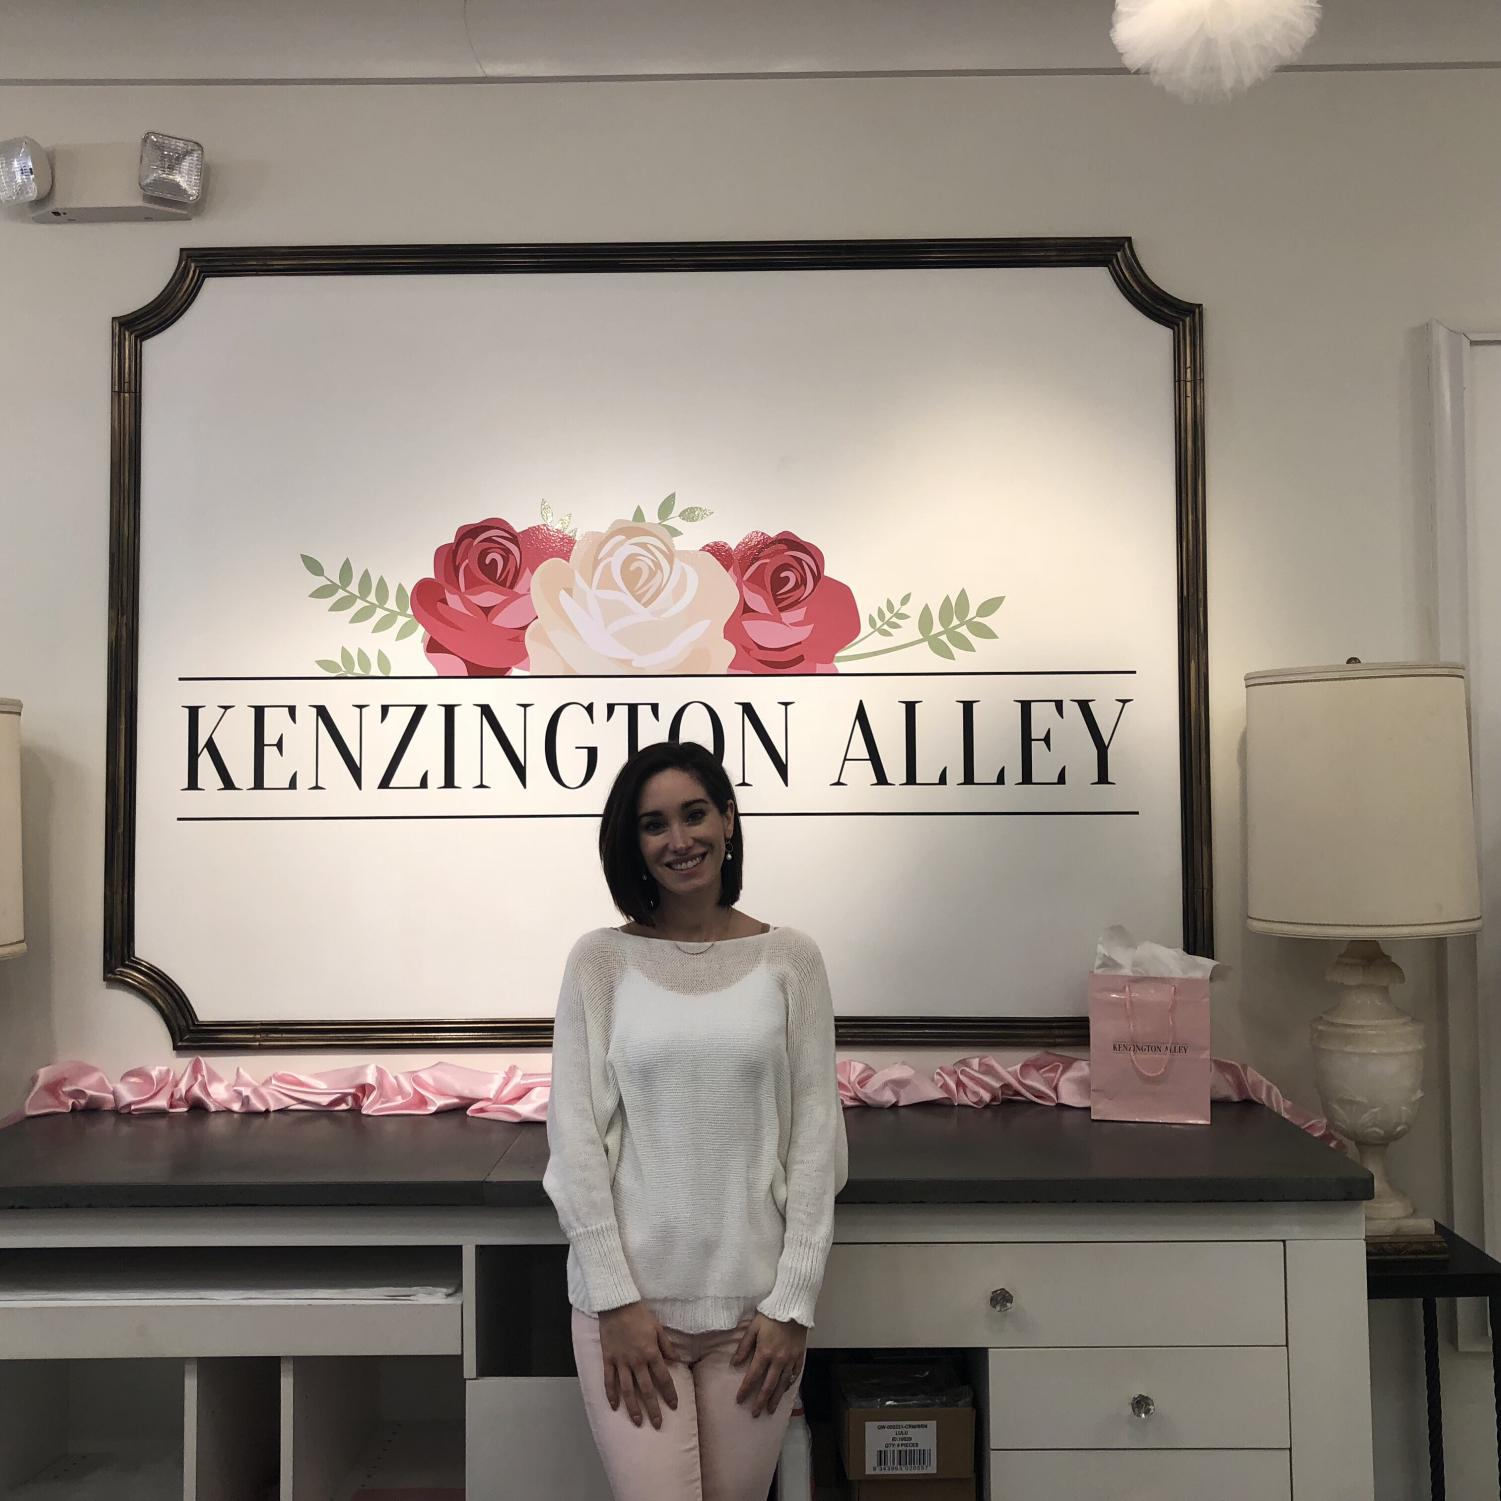 MacKenzie Morley's business, Kenzington Alley, is located downtown at 903 Third Avenue.